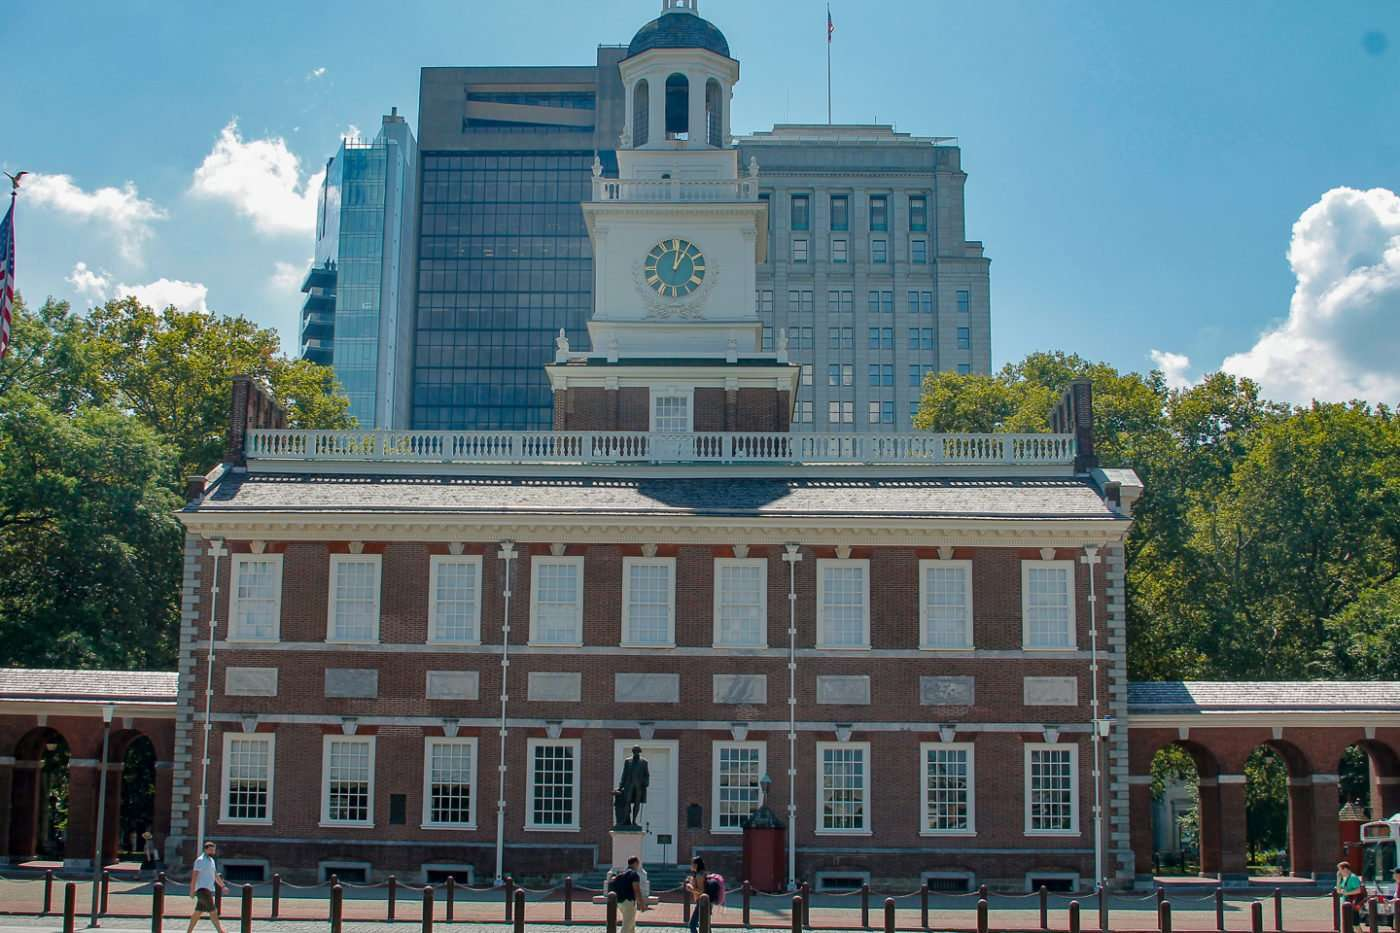 5 Awesome Family-Friendly Things to do in Philadelphia